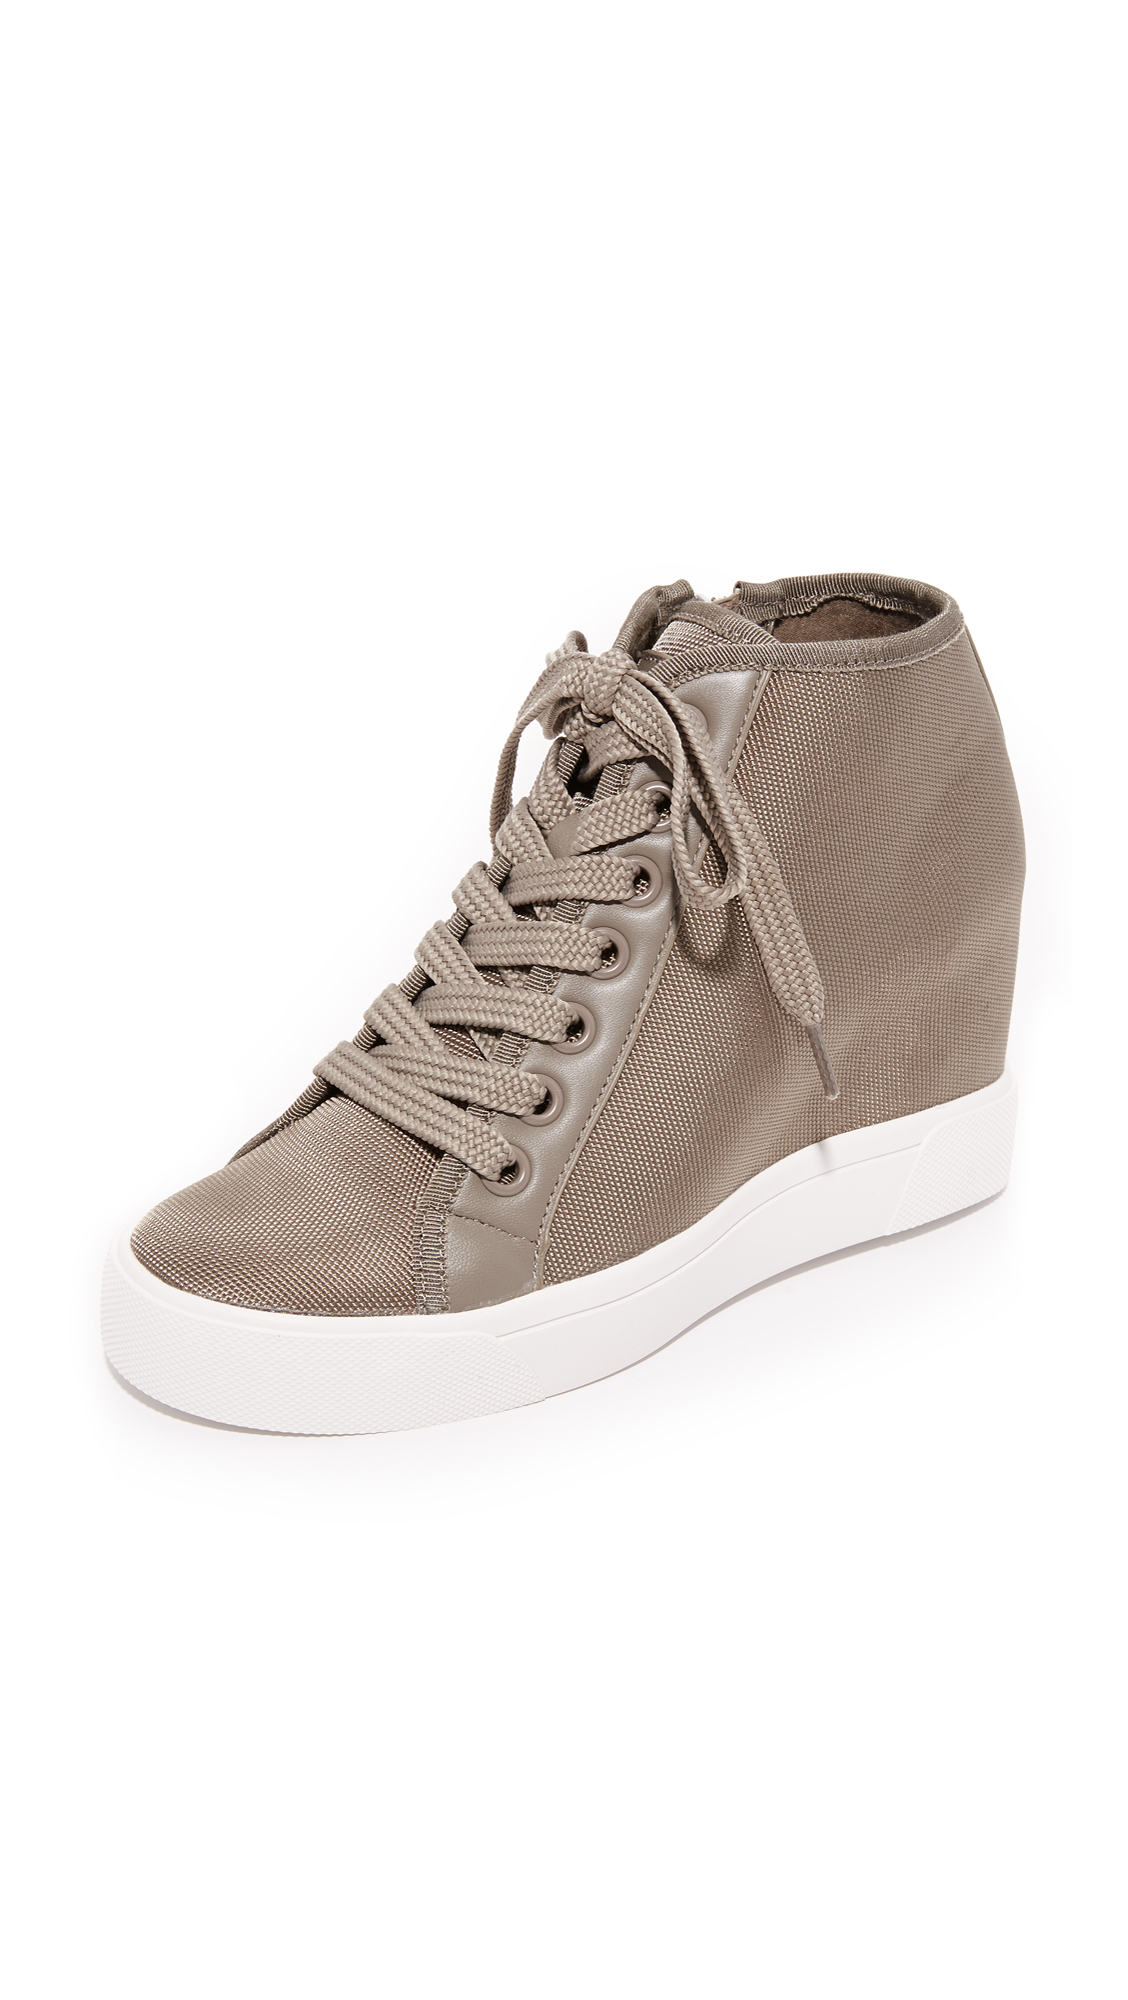 Dkny Cindy Wedge Sneakers - Clay at Shopbop